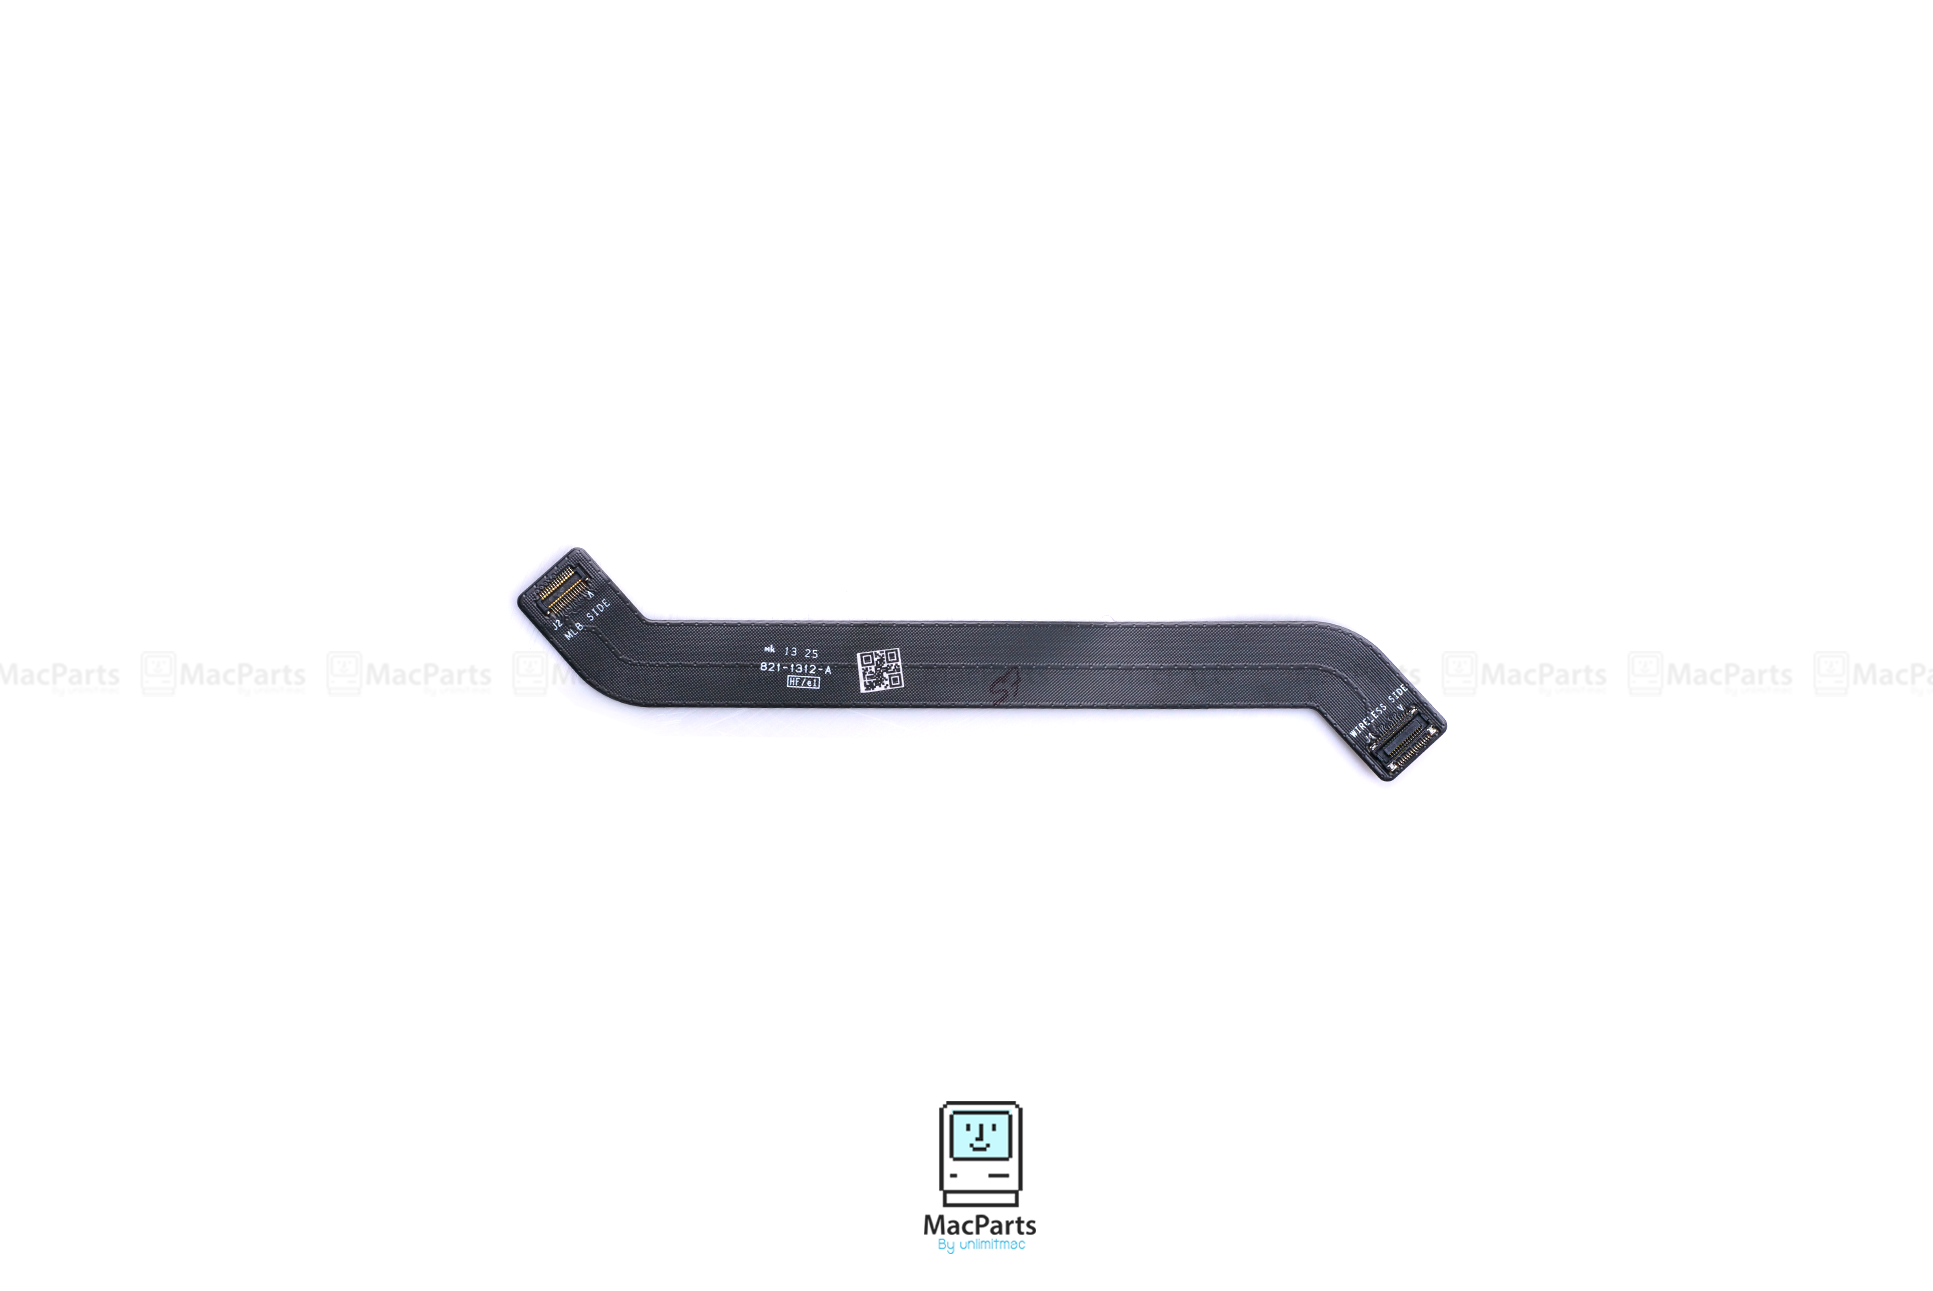 922-9780 AirPort/Bluetooth Flex Cable MacBook Pro (13-inch, Early 2011) MacBook Pro (13-inch, Mid 2012) MacBook Pro (13-inch, Late 2011) การ์ดไวไฟและบลูทูธ